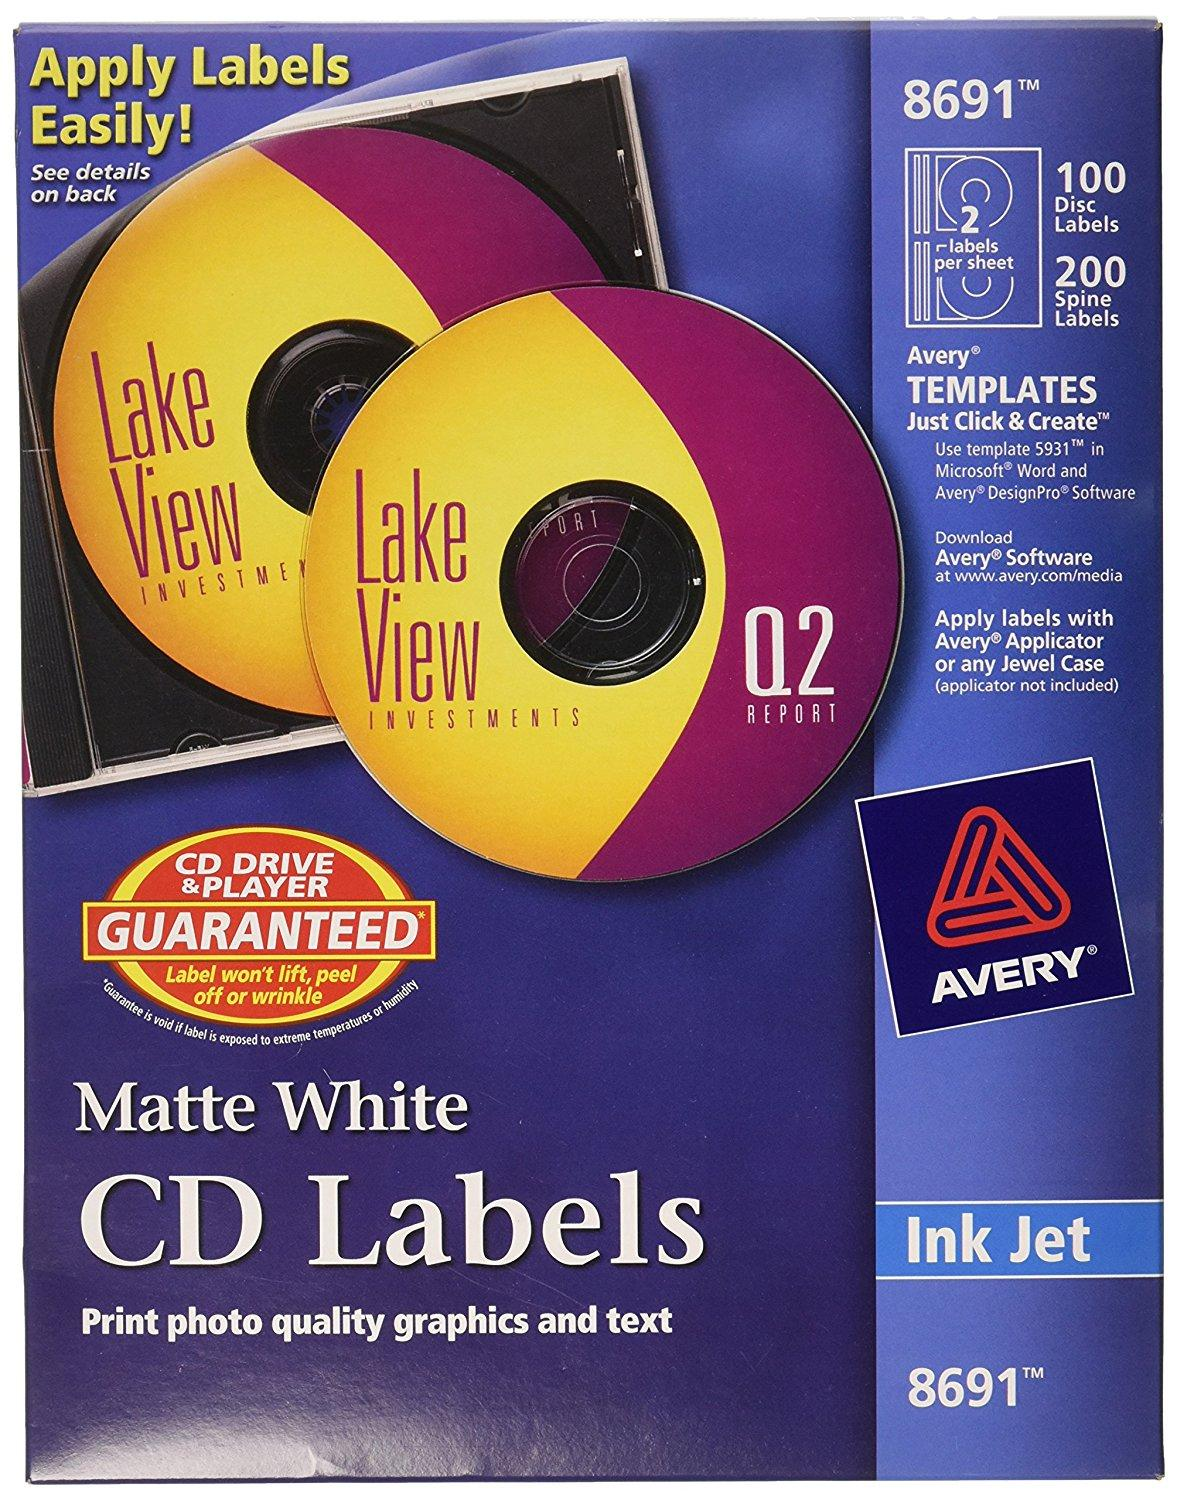 Avery Cd Labels Template 8692